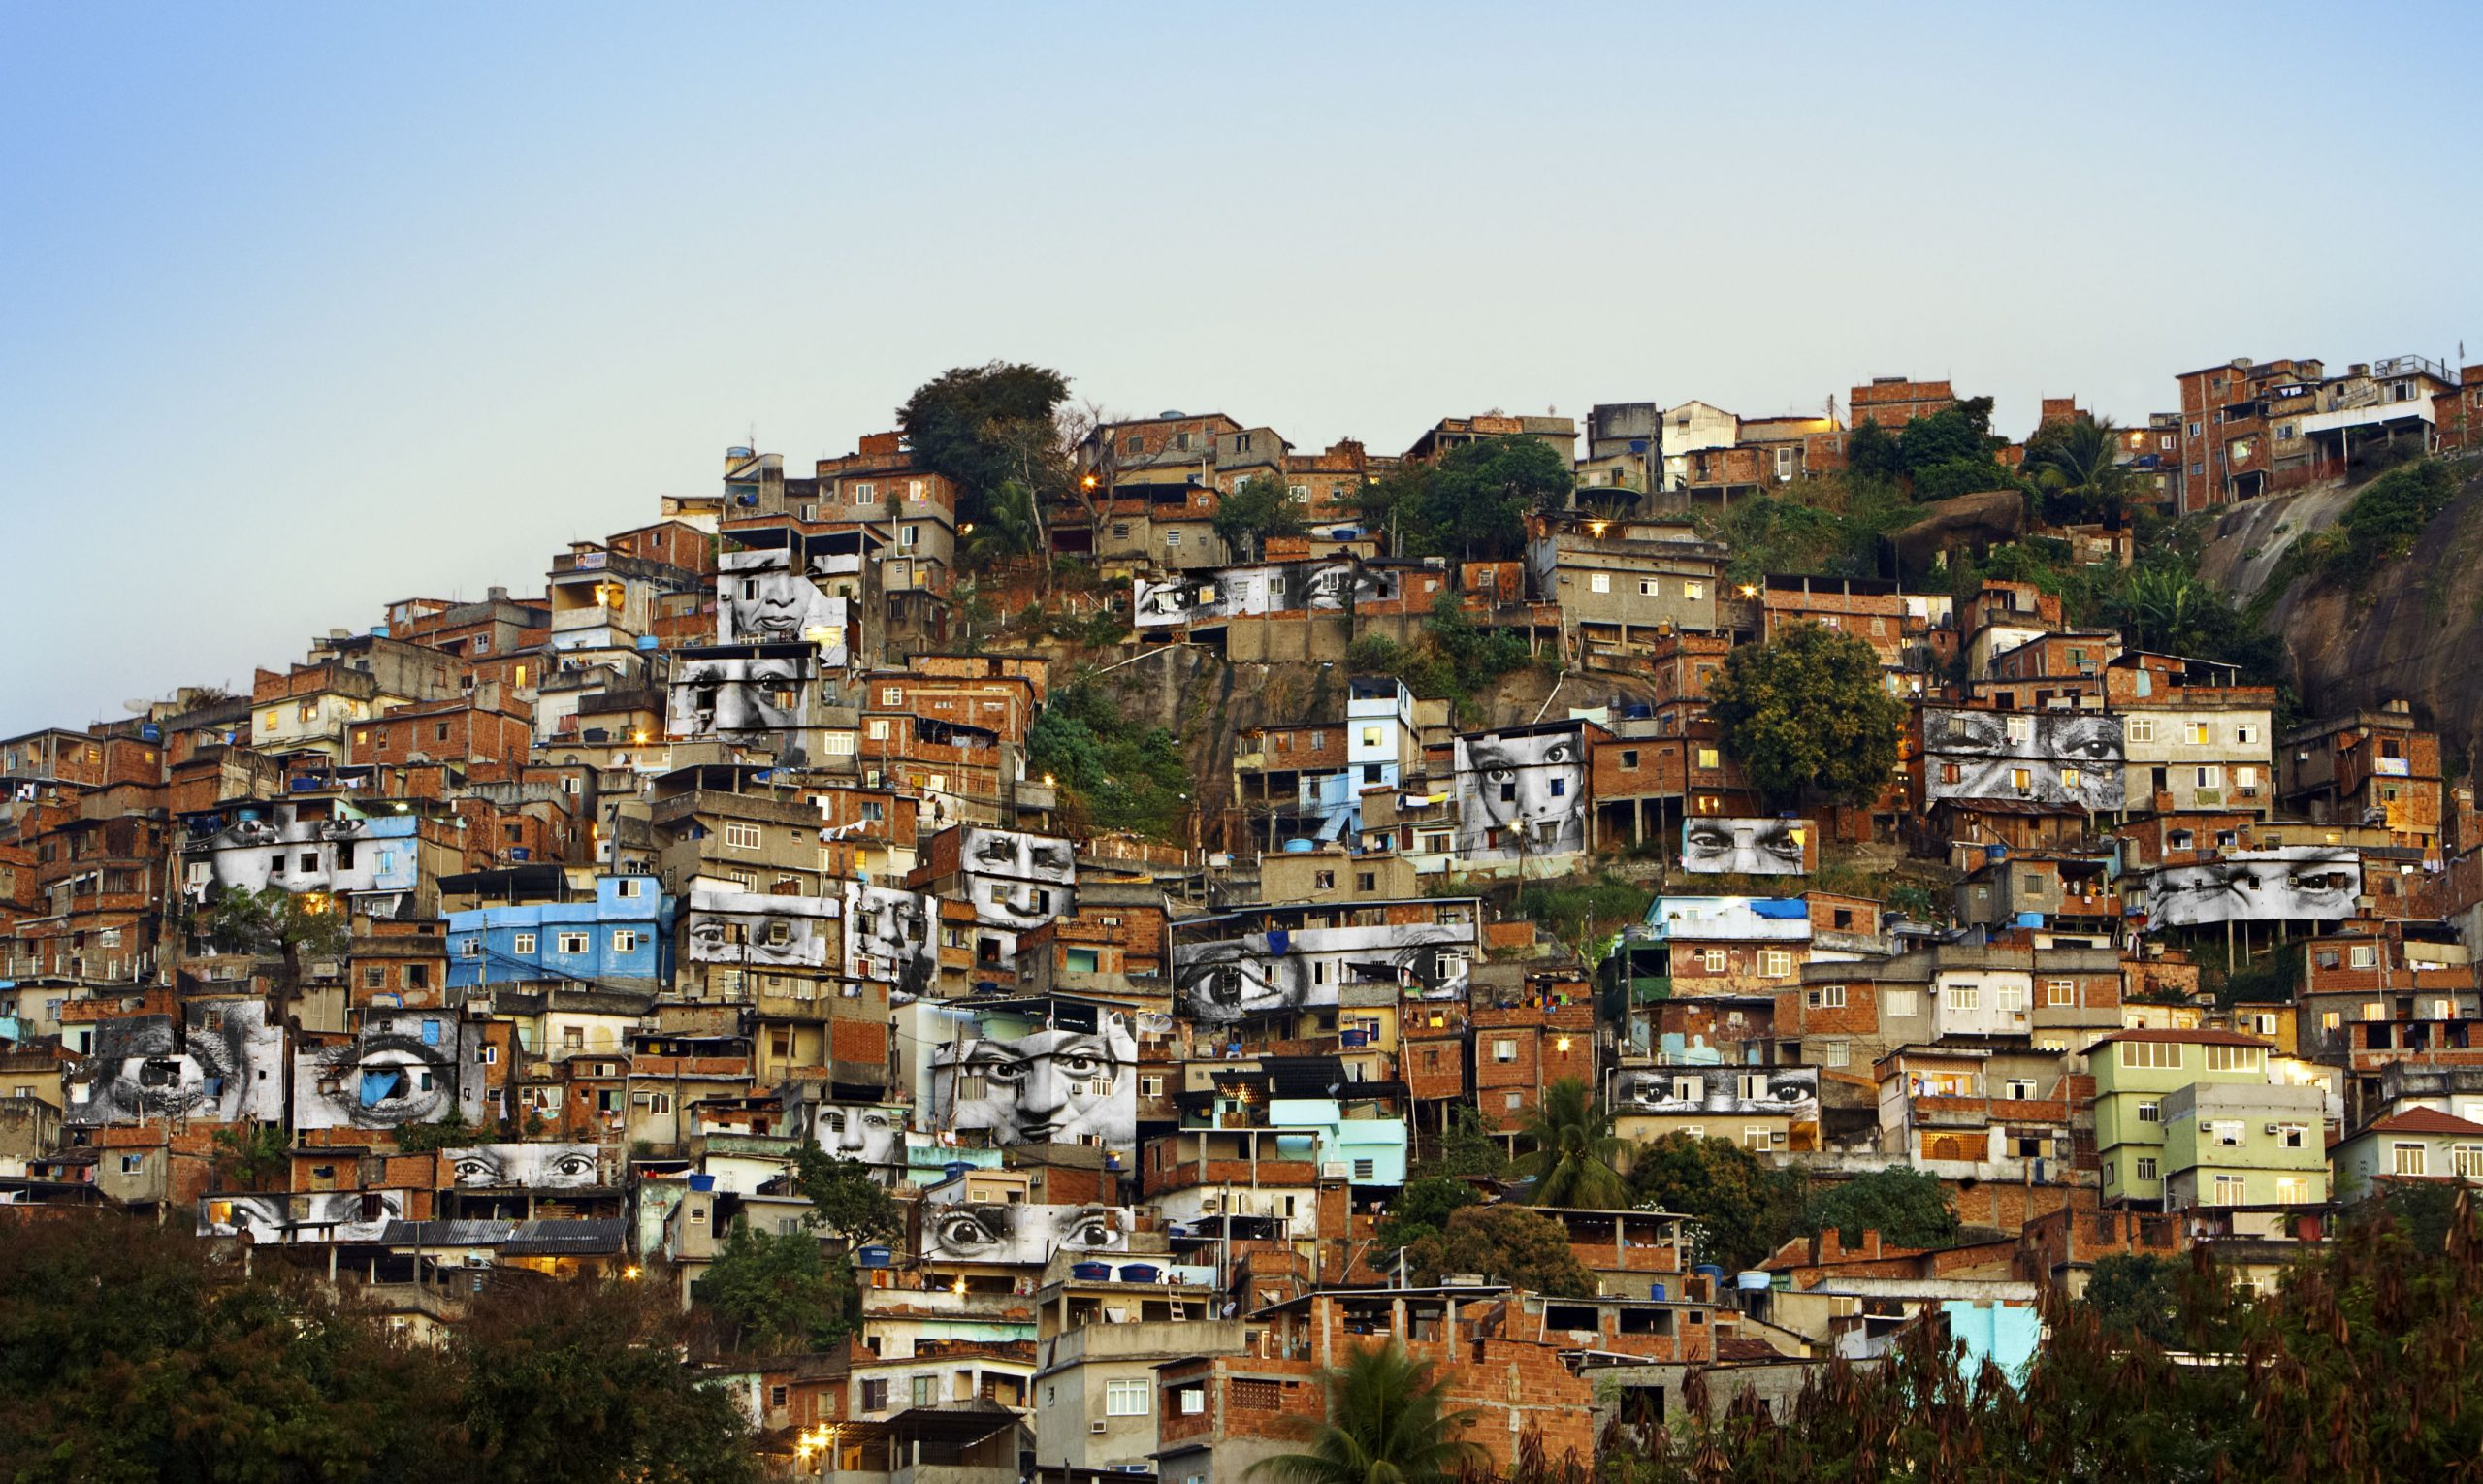 JR (French, born 1983). 28 Millimètres, Women Are Heroes, Action dans la Favela Morro da Providência,